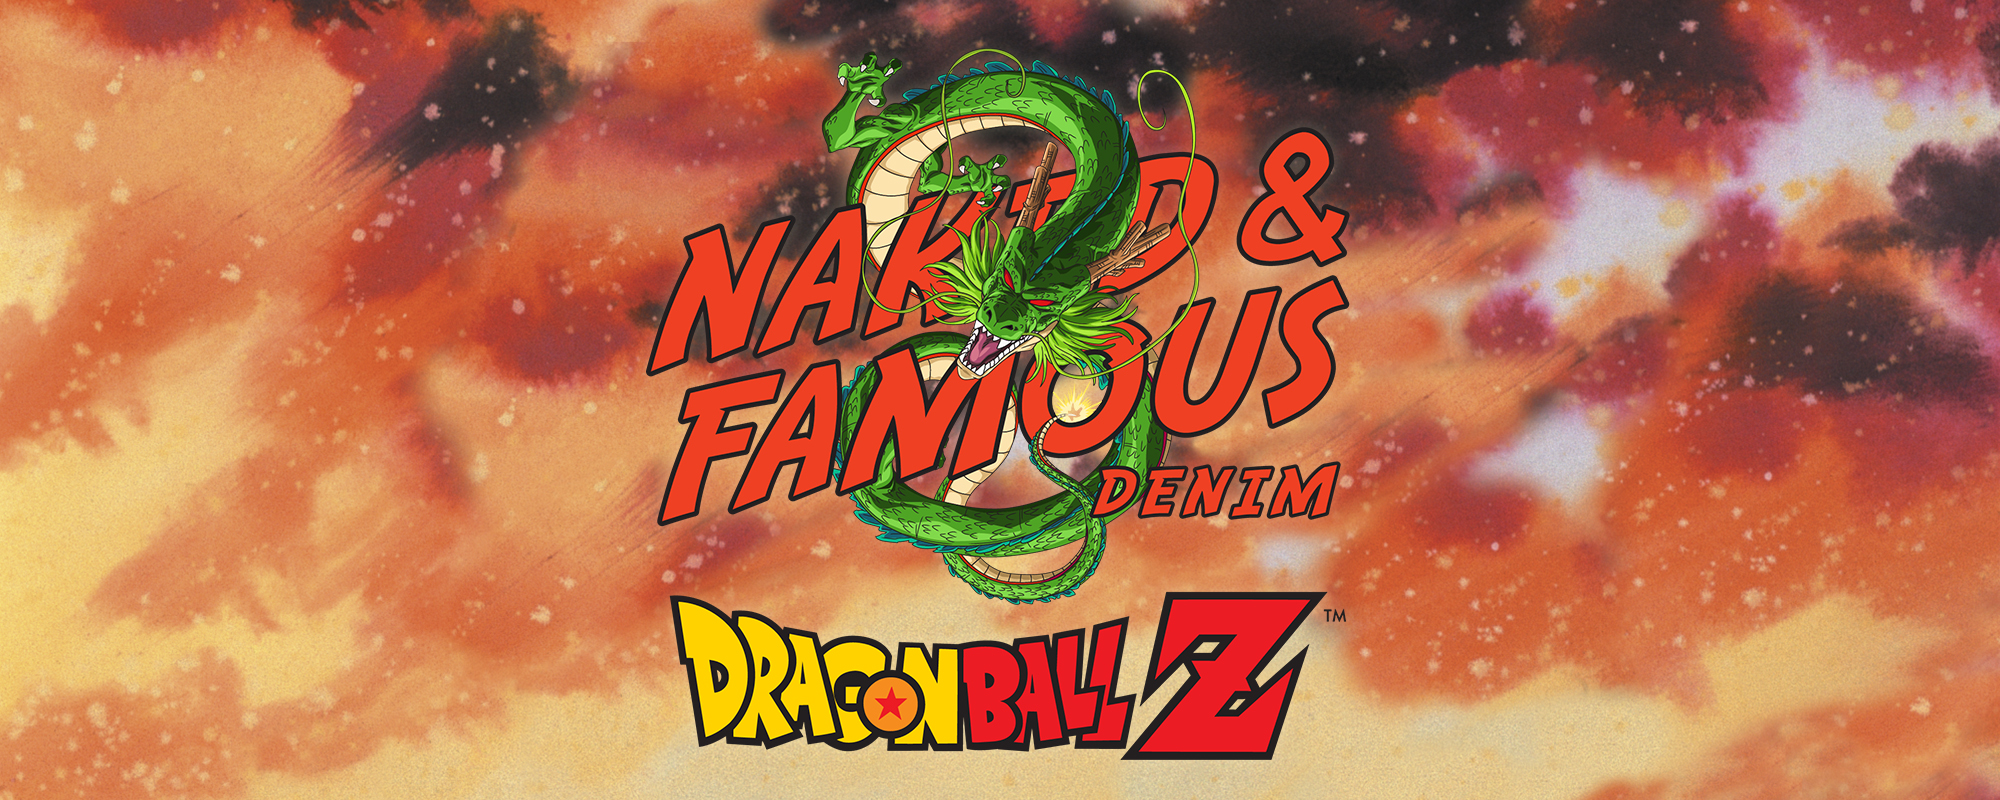 Dragon Ball Z x Naked & Famous Denim Dual Logo